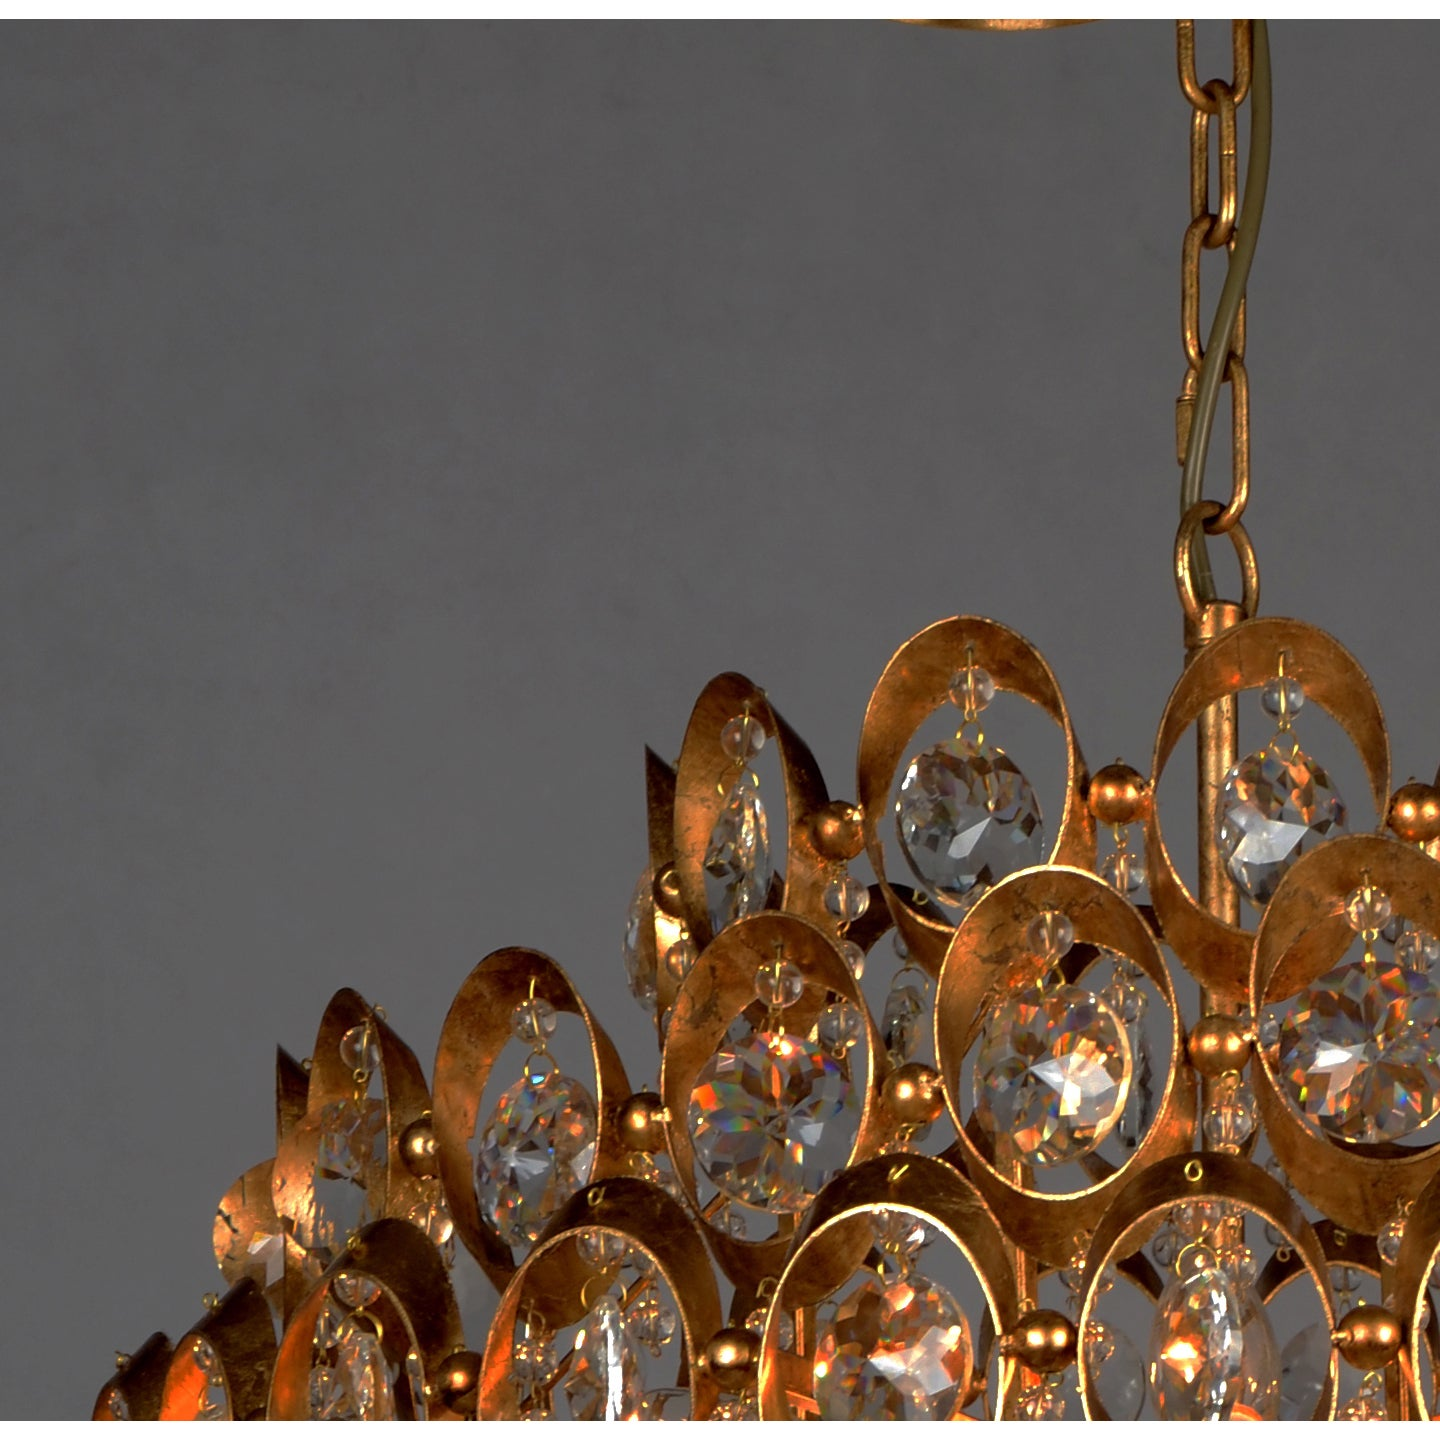 Y decor 12 light crystal chandelier in gold finish free shipping y decor 12 light crystal chandelier in gold finish free shipping today overstock 21544959 arubaitofo Image collections